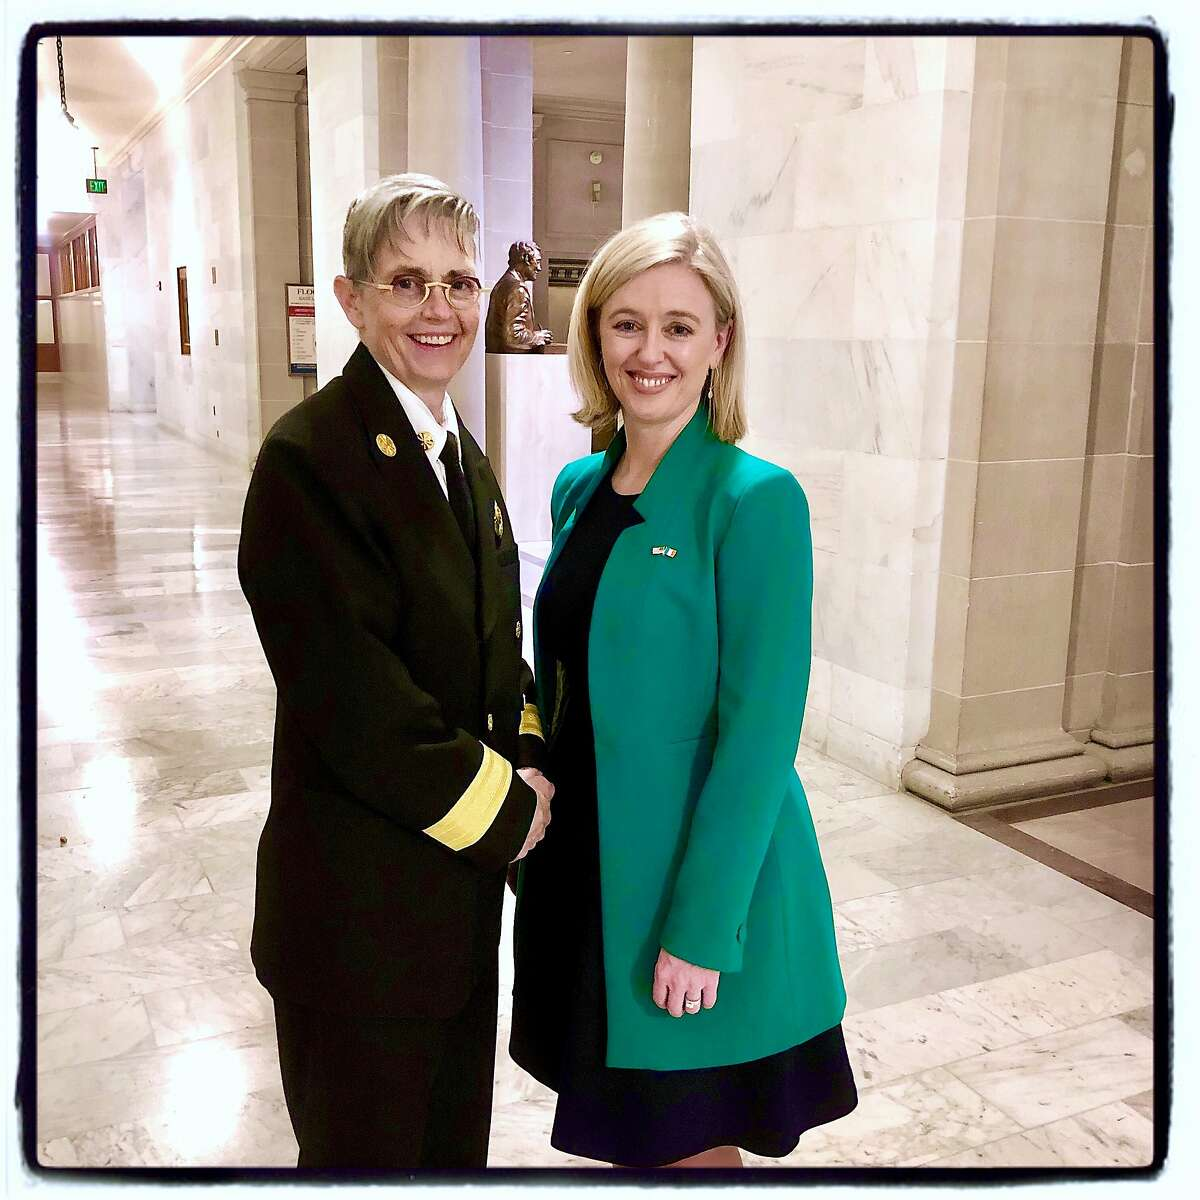 SFFD Chief Jeanine Nicholson (left) with Irish Immigration Pastoral Center Executive Director Celine Kennelly at City Hall. March 2020.